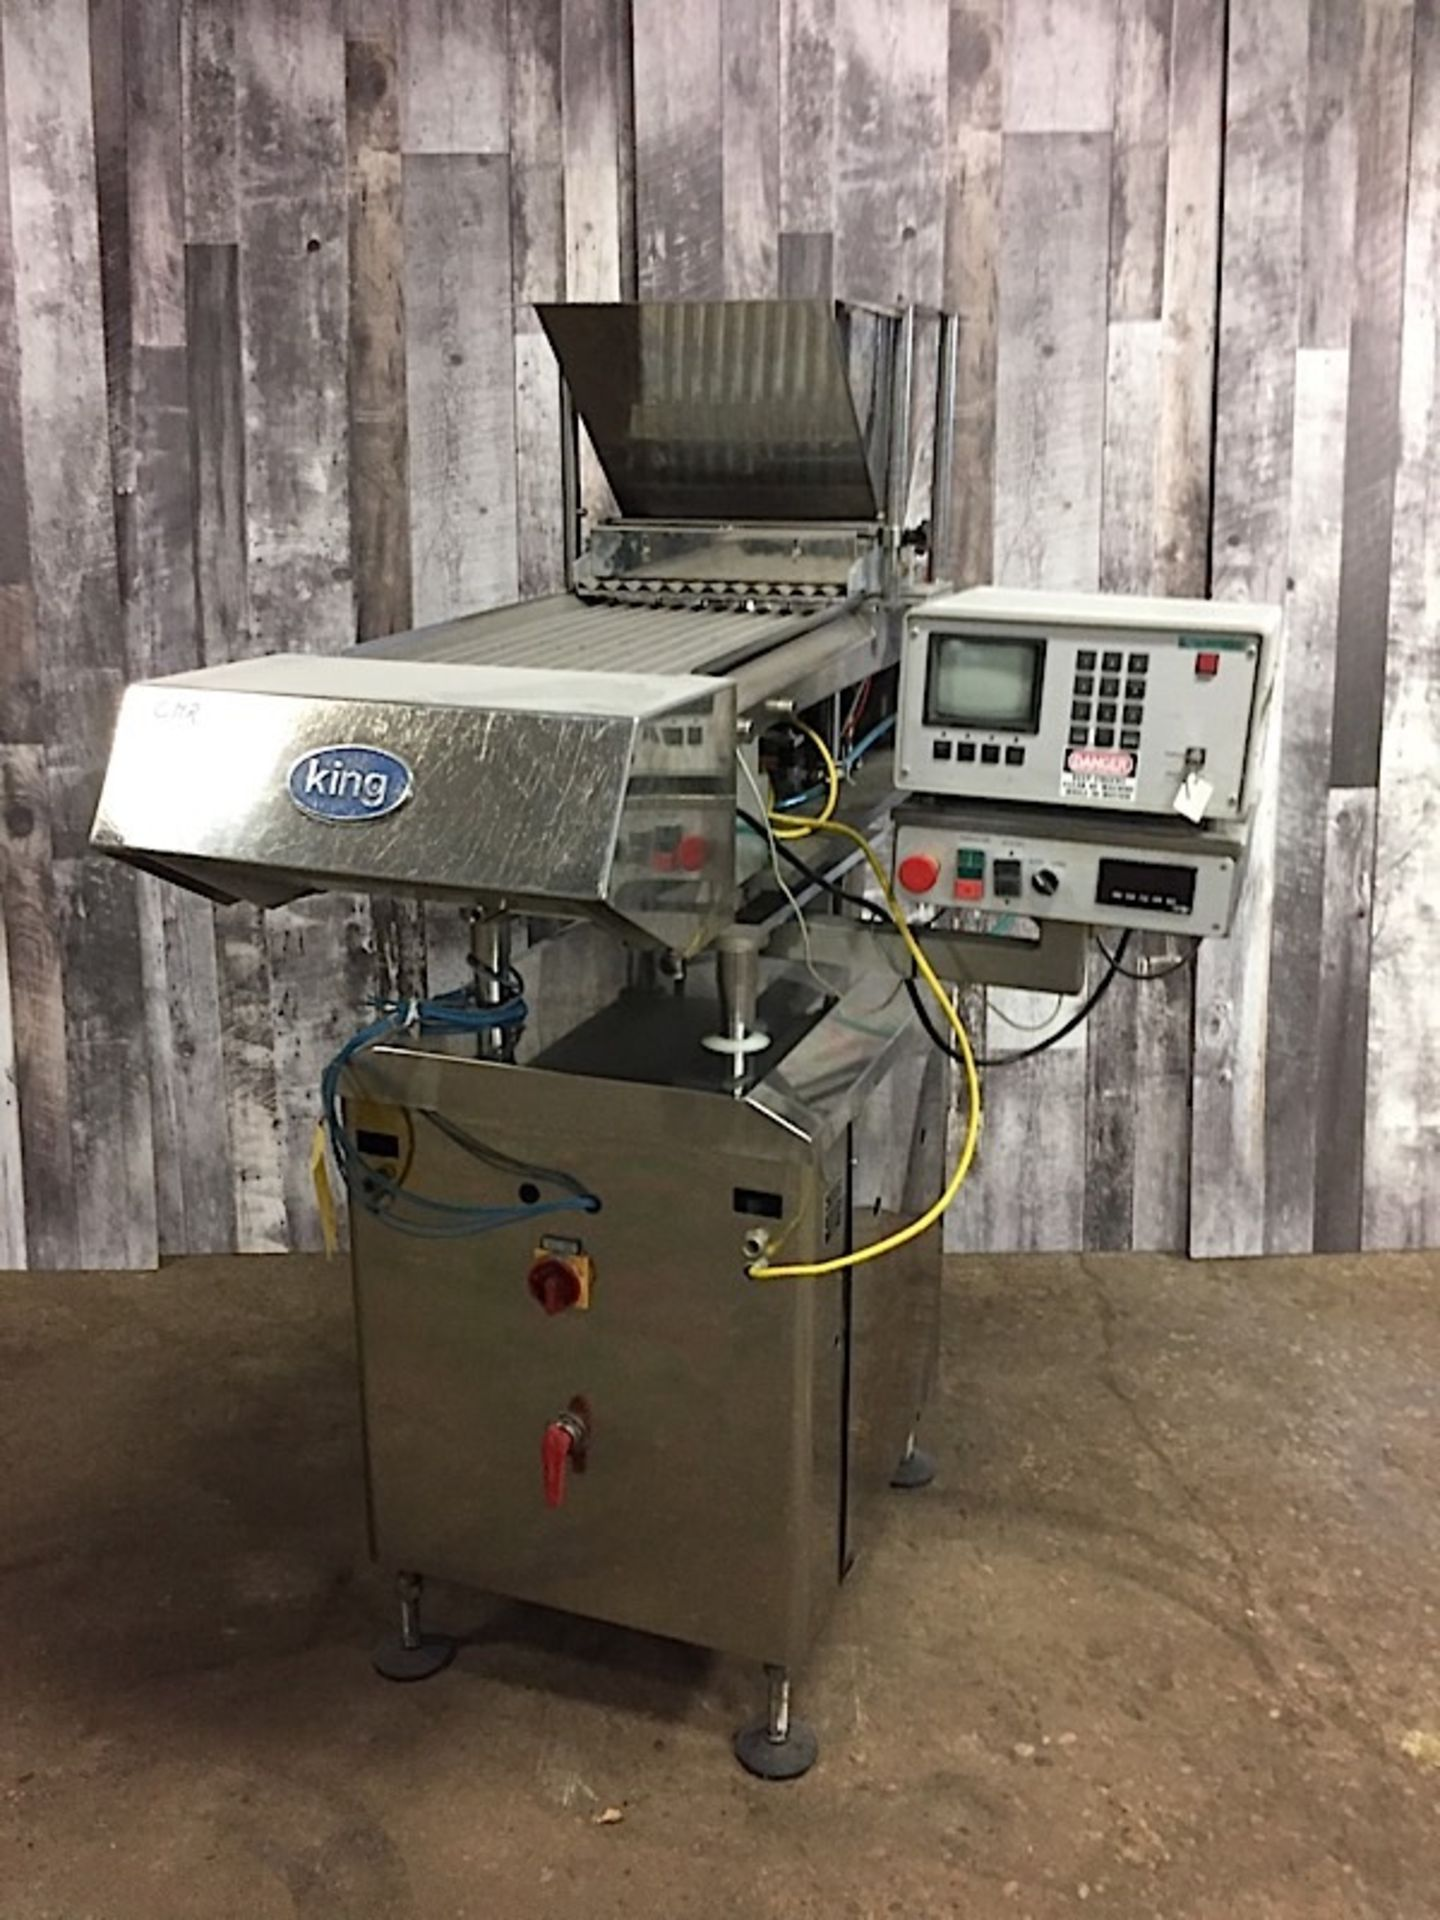 Lot 28 - KING TABLET COUNTER MACHINEACCURACY OF PILL COUNTING CAN BE MONITORED EITHER VISUALLY OR